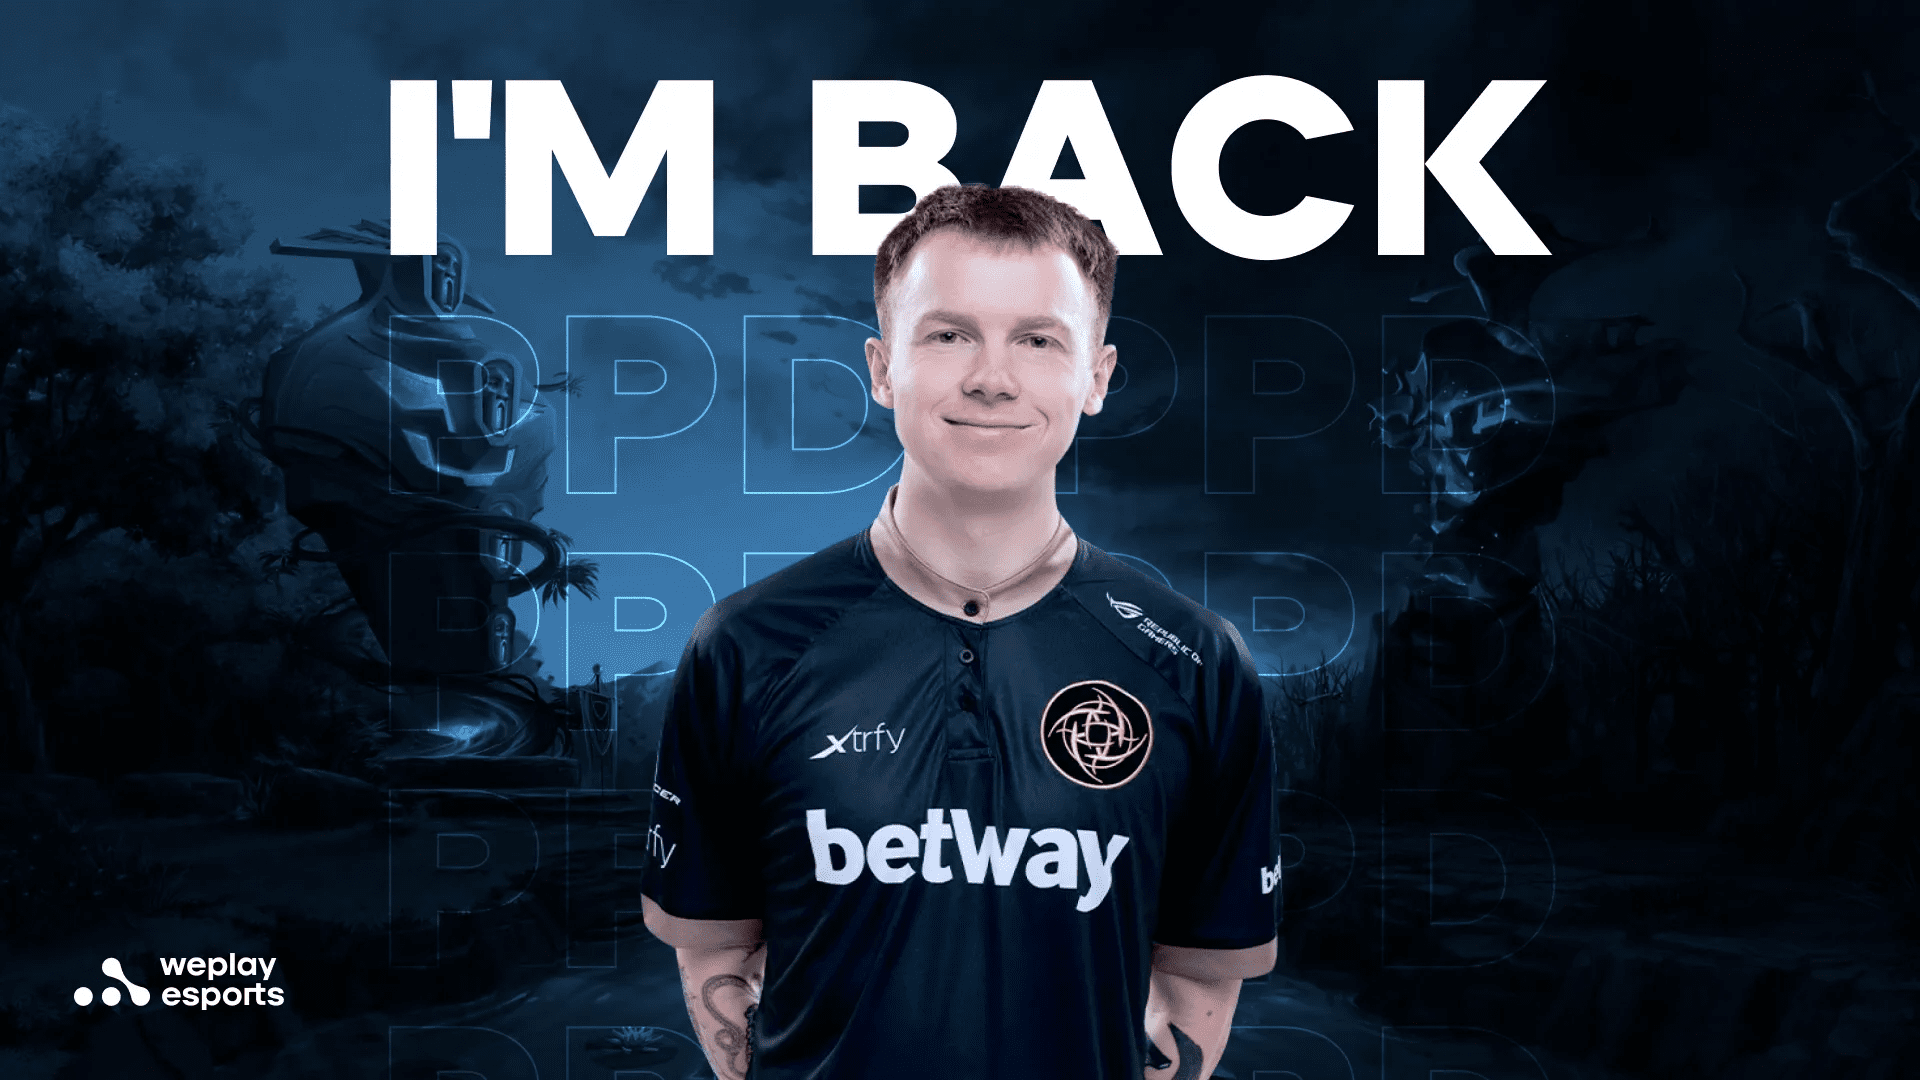 PPD is back